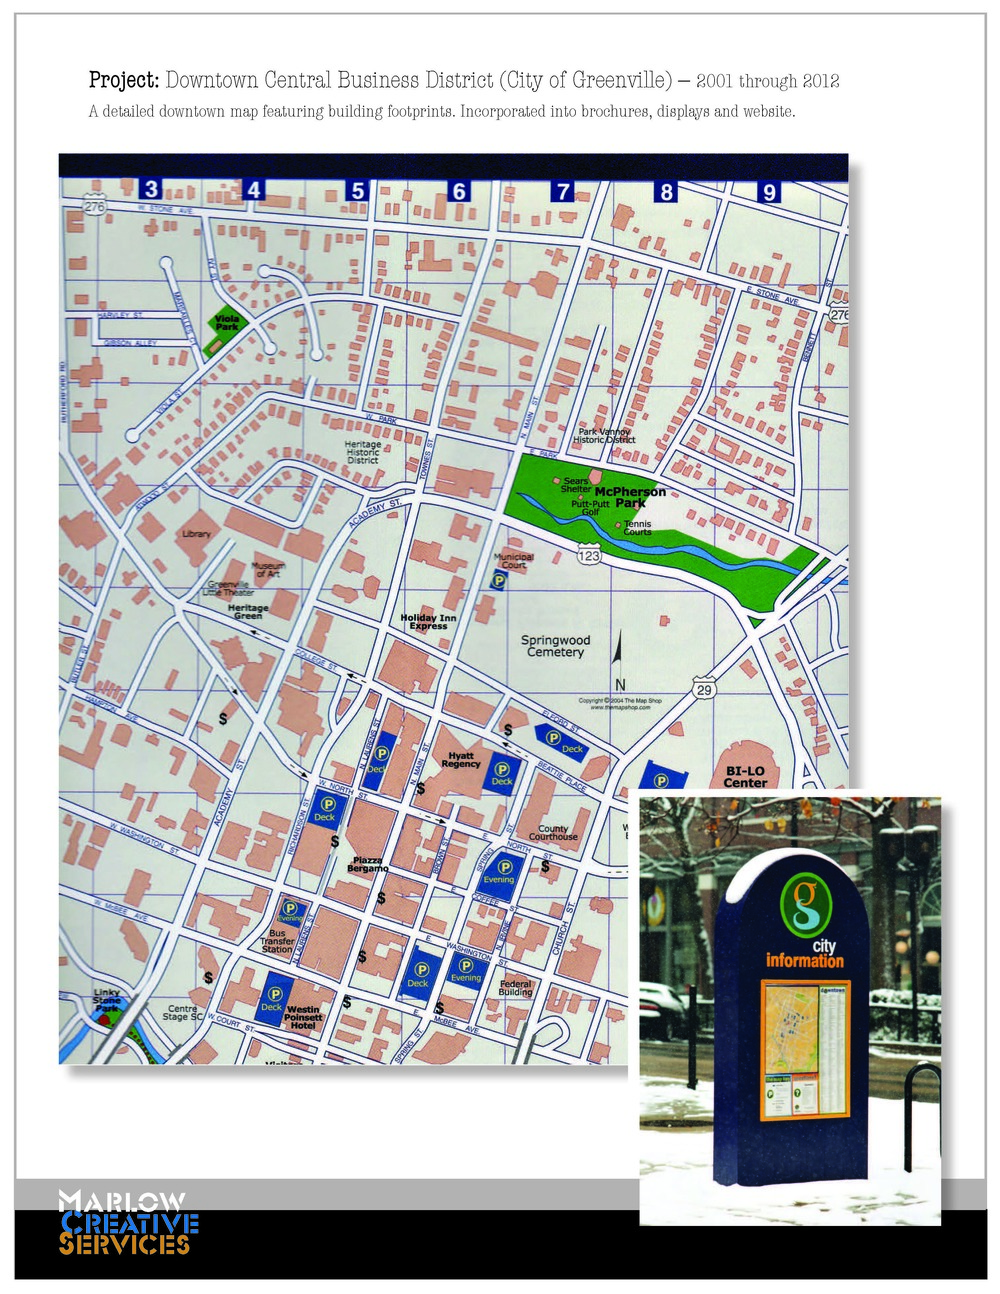 Custom Mapping Site Locator Maps Speciality Maps Marlow Creative - Custom mapping services